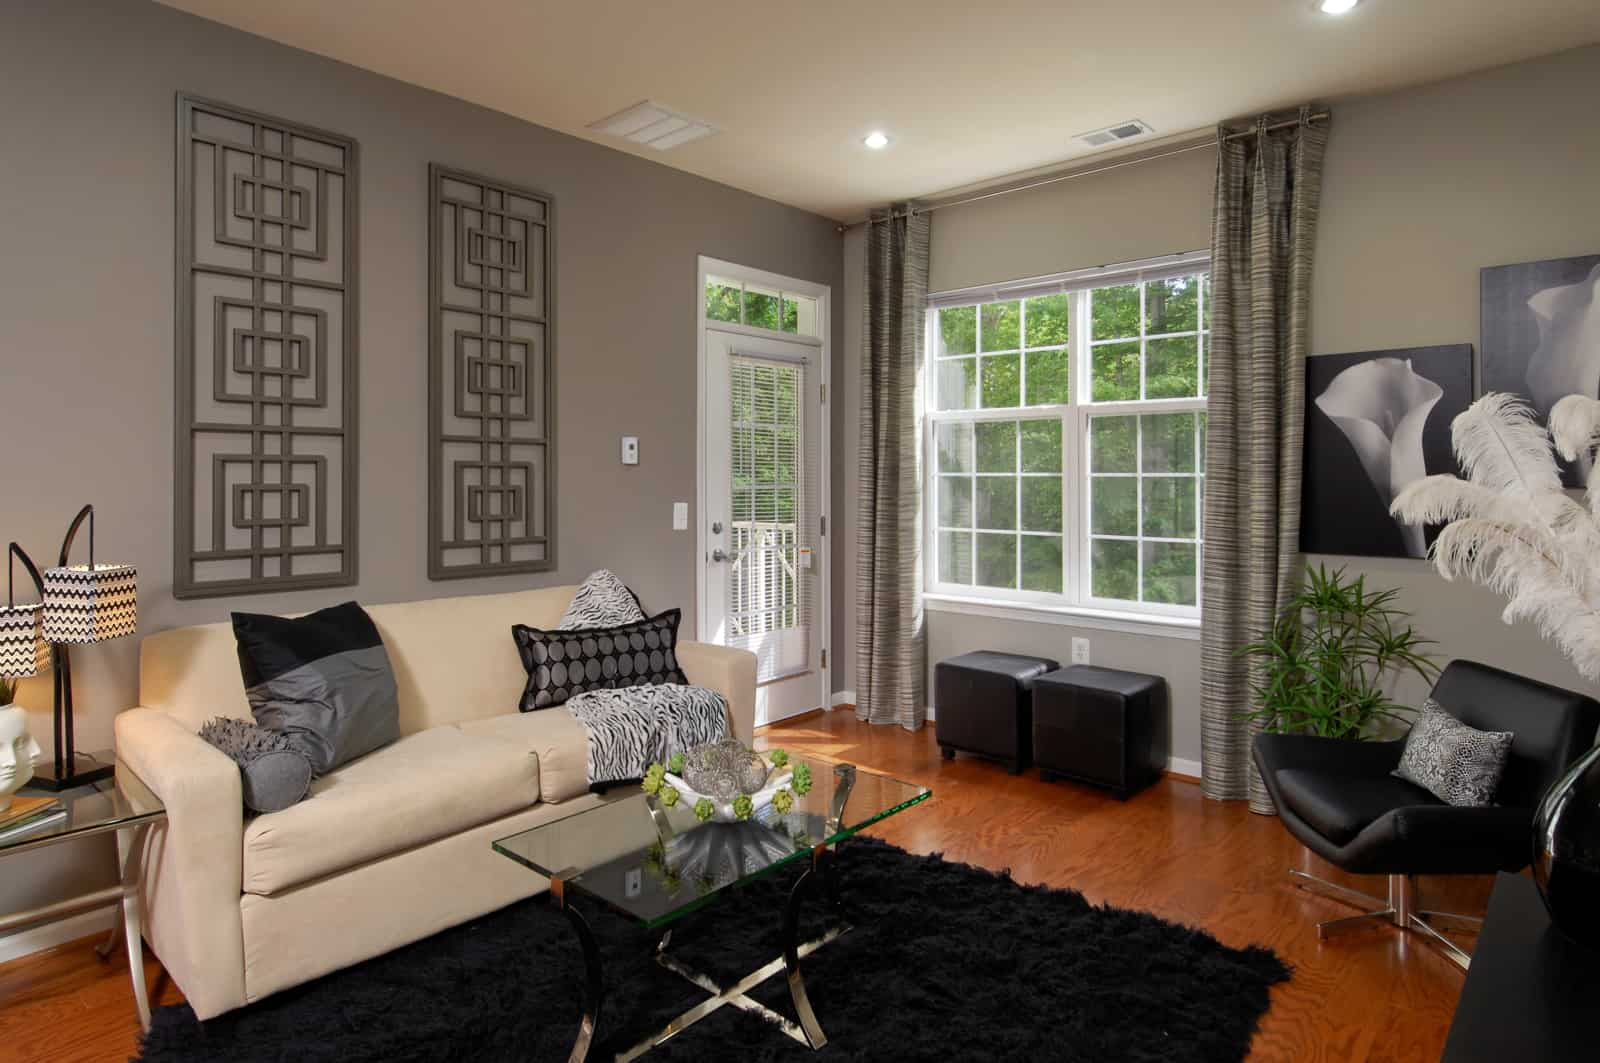 Interior of living room with black and white decor.